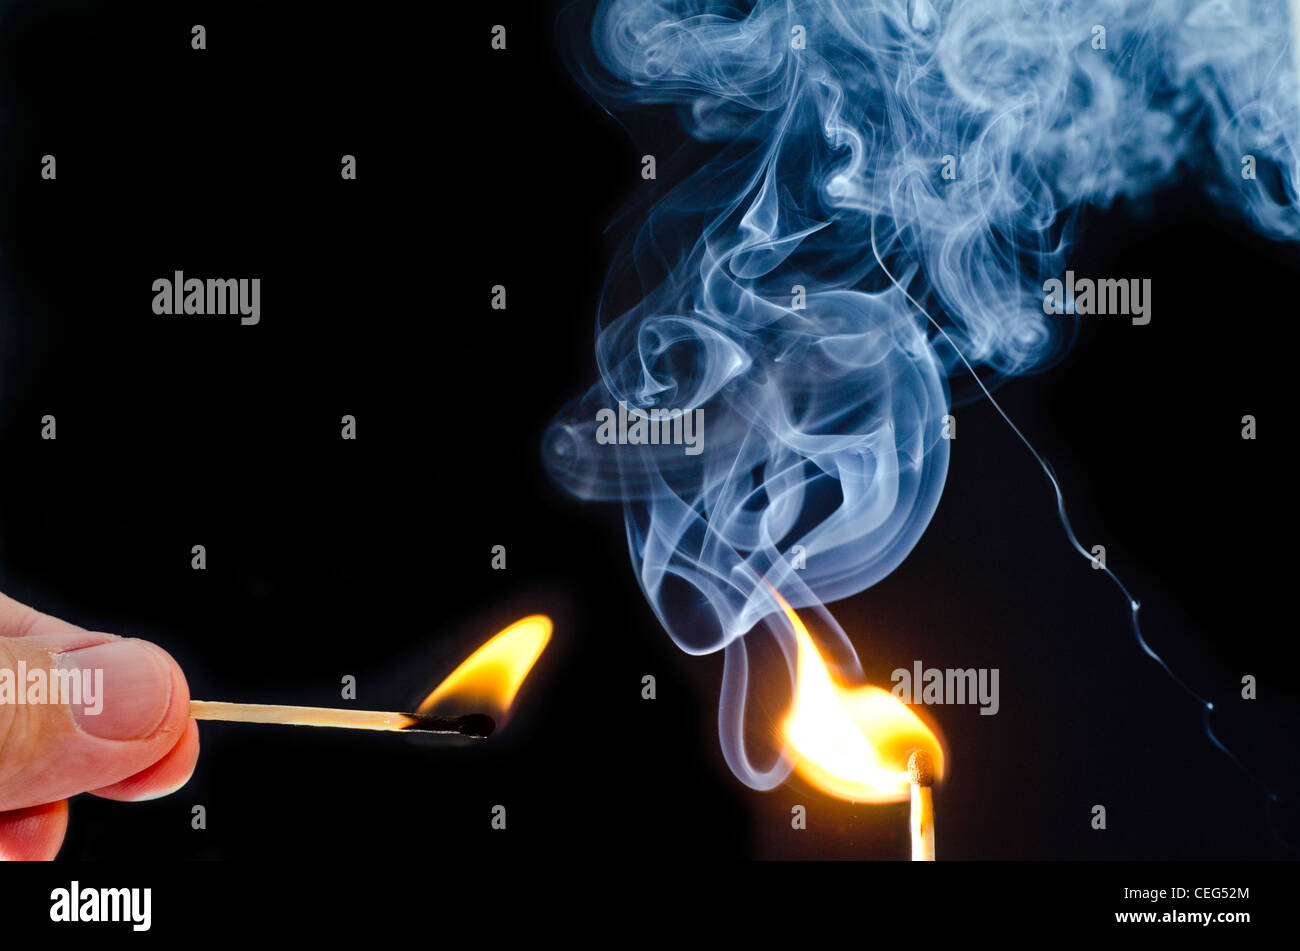 Man lighting a match with another match, with blue smoke rising against a black background. Stock Photo